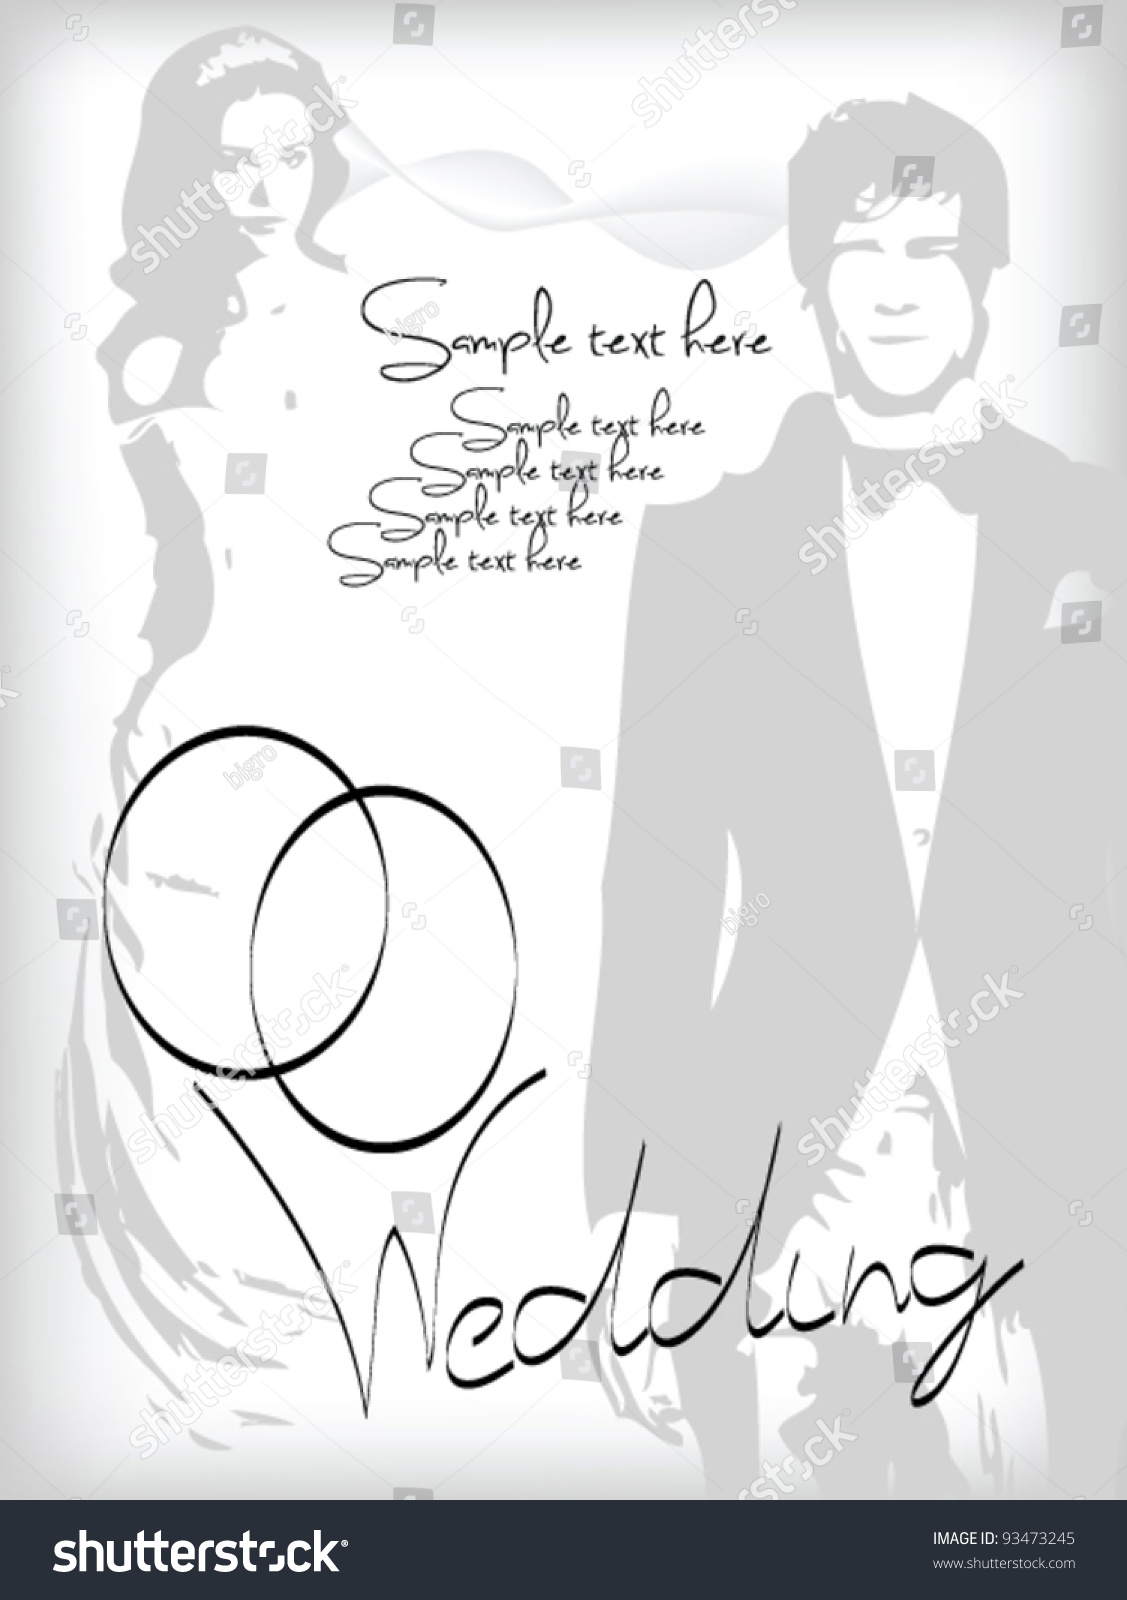 Wedding Invitation Vector Bride Groom Add Stock Vector 93473245 ...